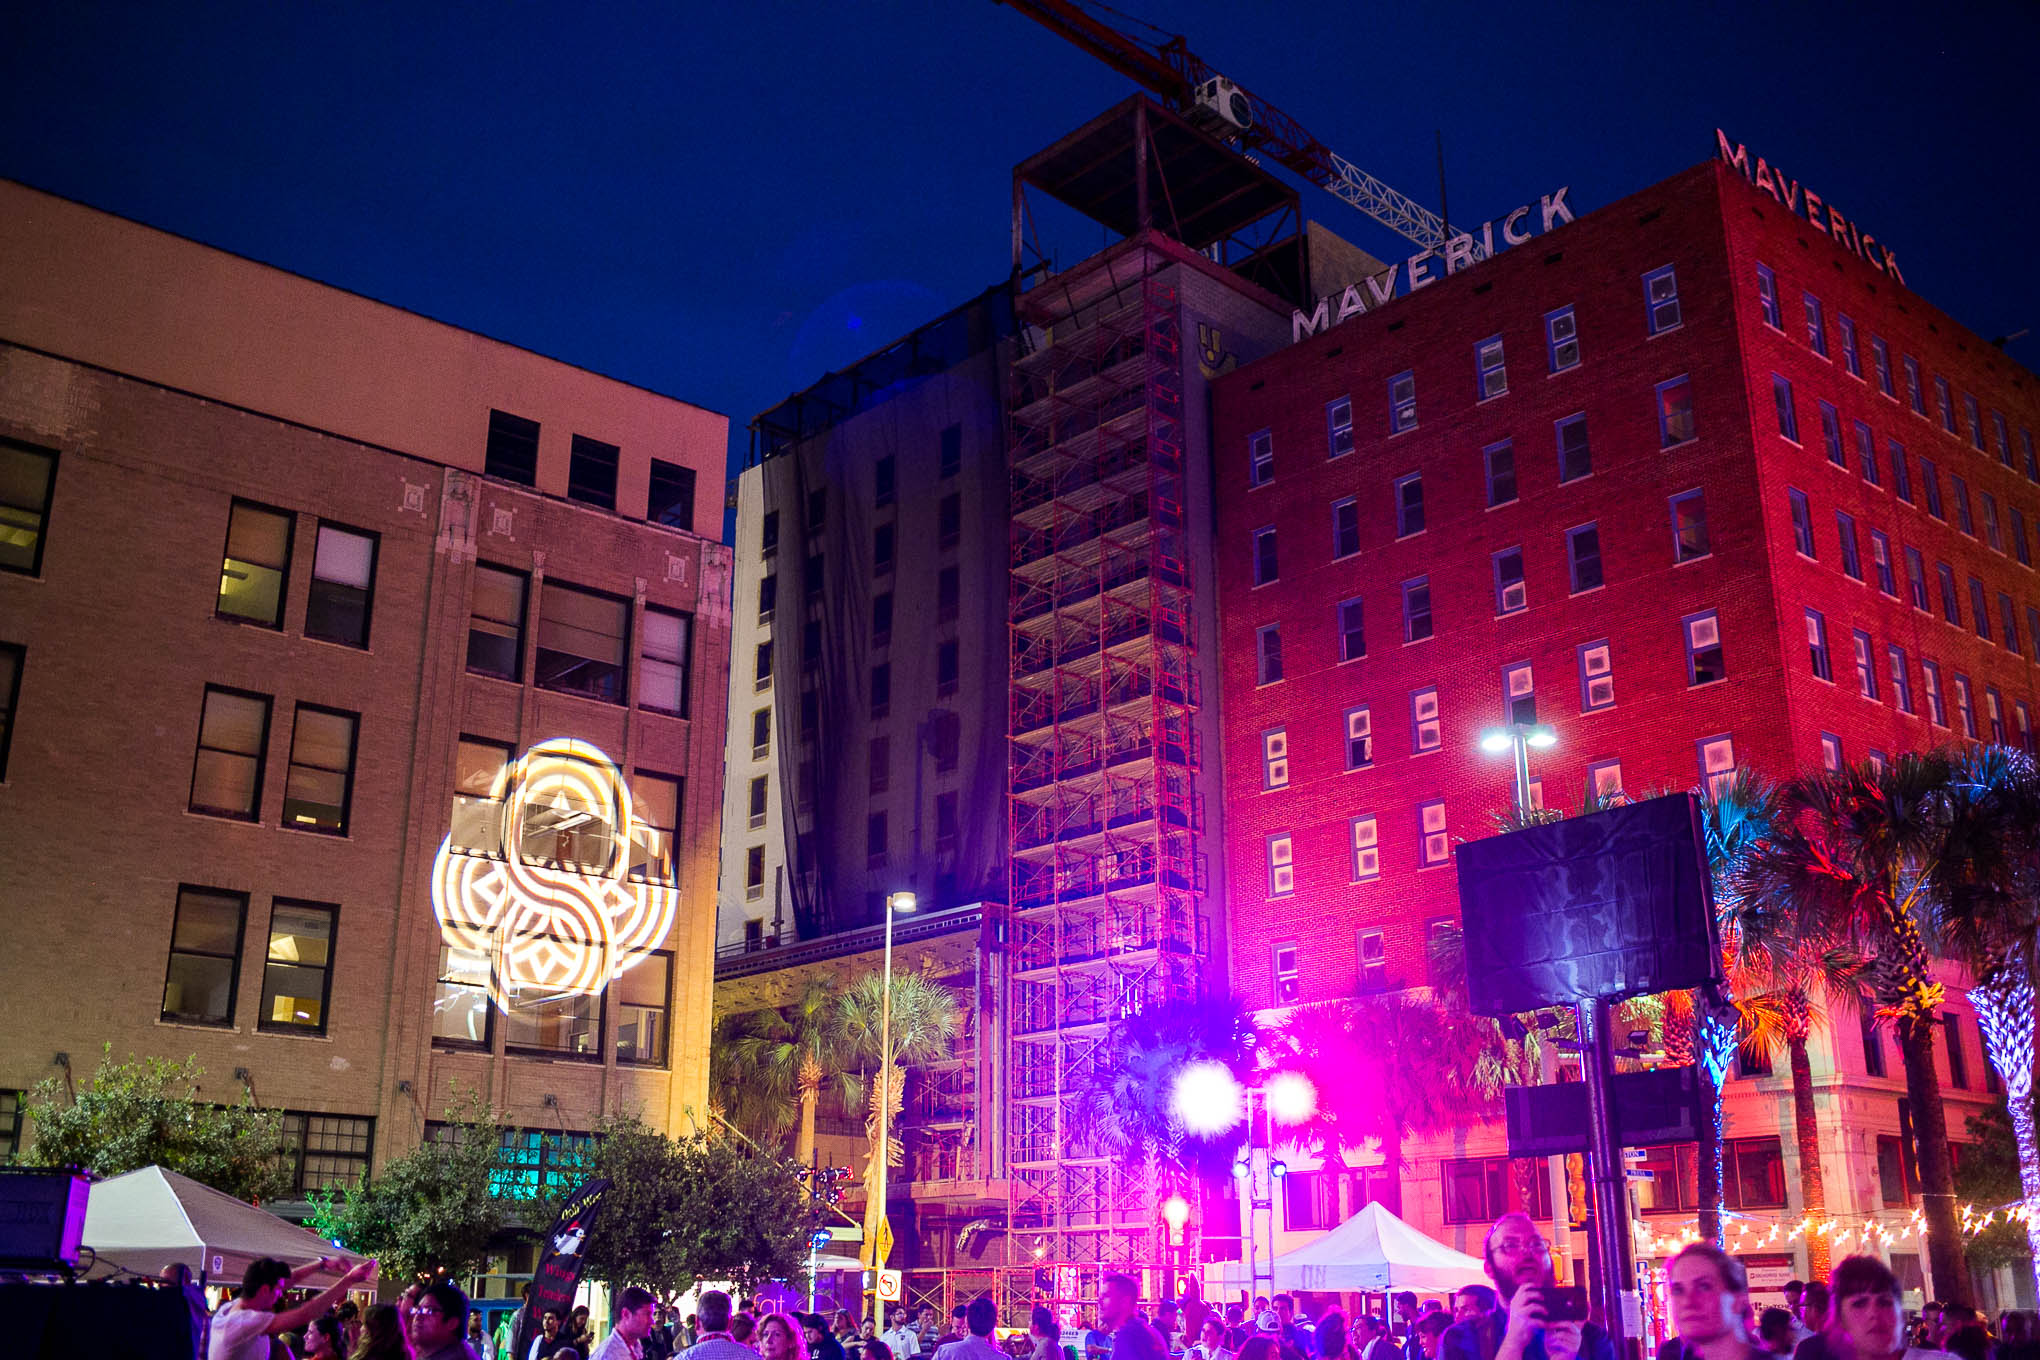 The new brand launch drew hundreds of people to the San Antonio downtown core. Photo by Kathryn Boyd-Batstone.